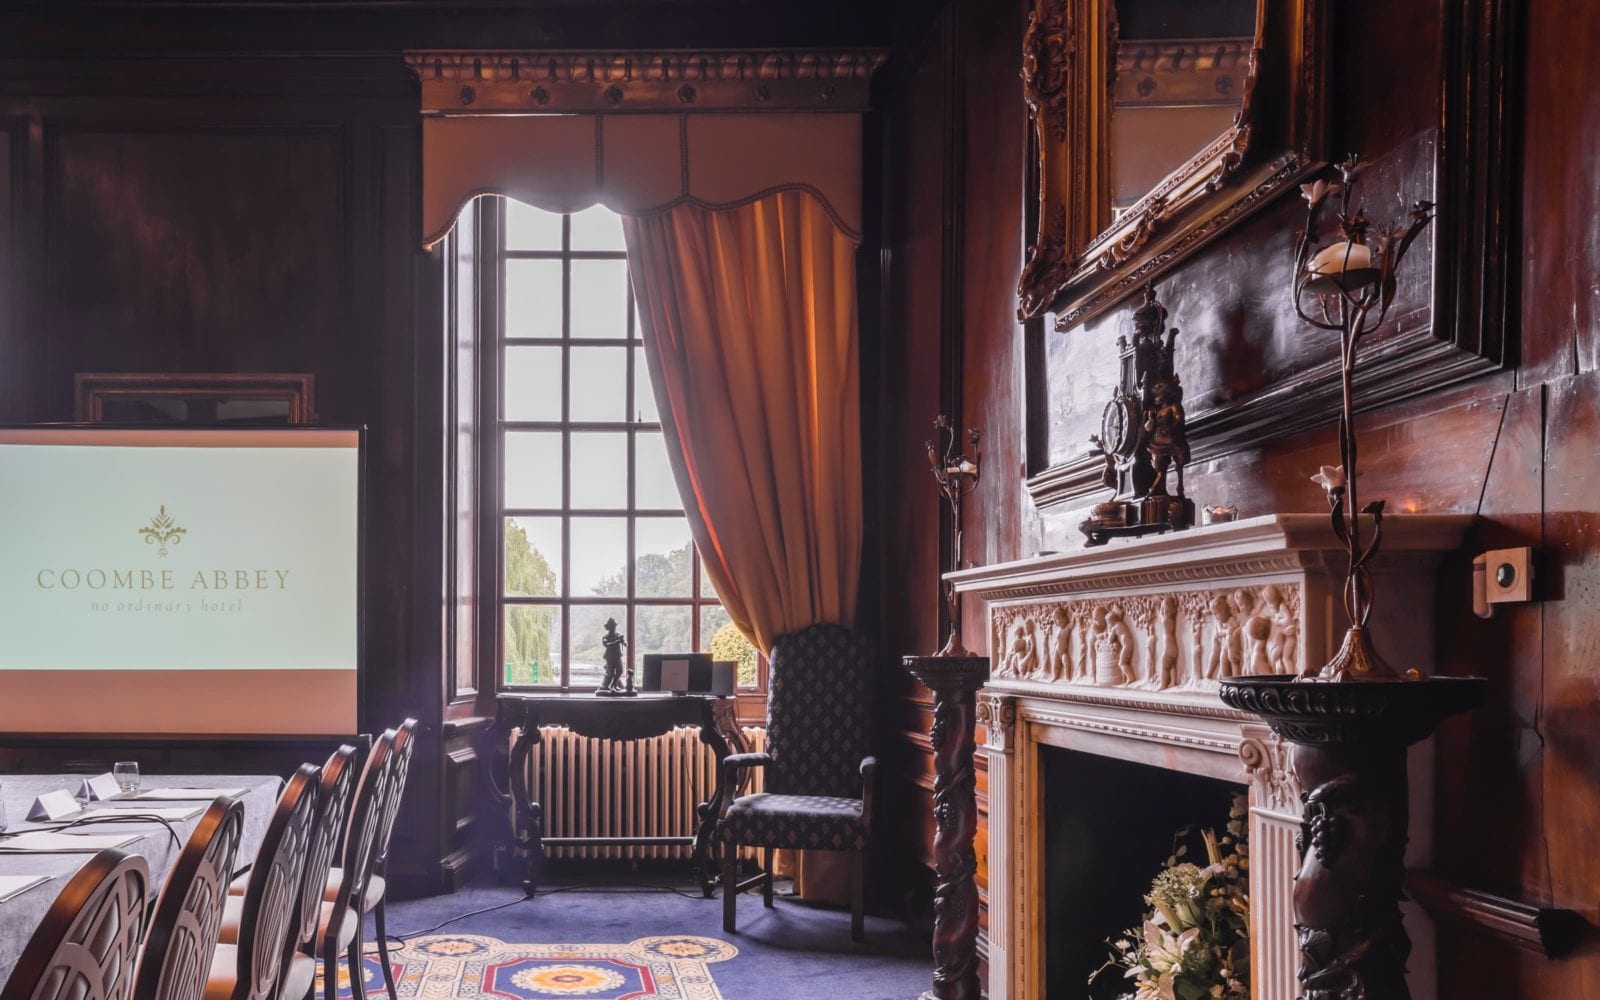 Coombe Abbey Walnut room